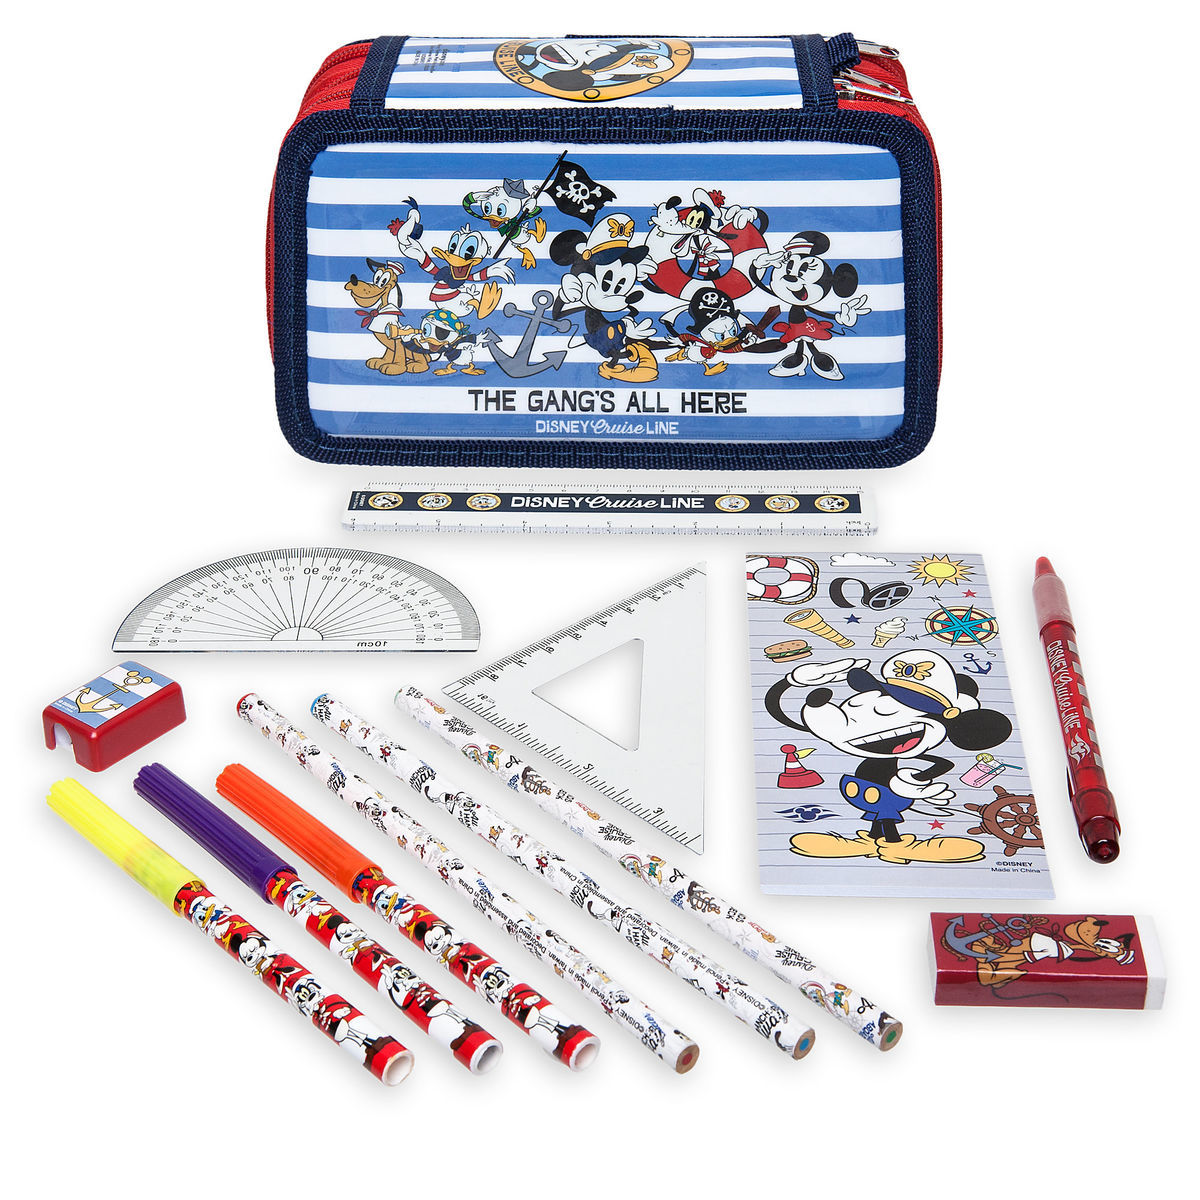 Product Image Of Mickey Mouse And Friends Stationery Kit Disney Cruise Line 1